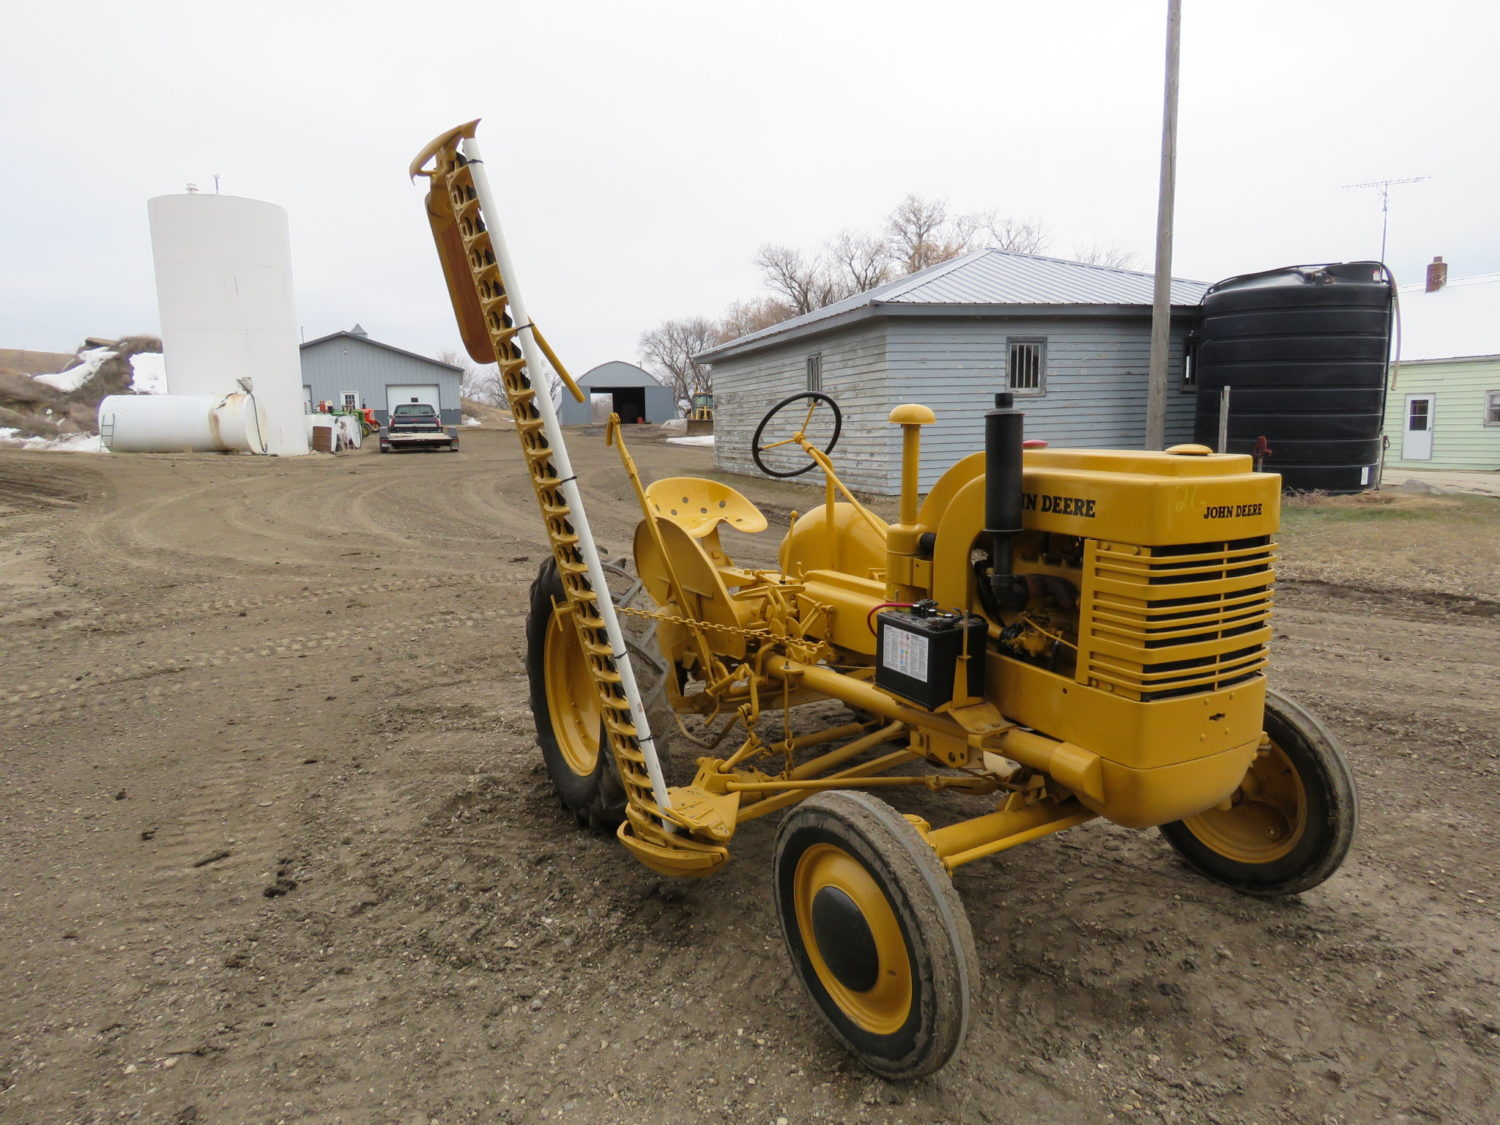 Day 1- Antique Tractors, Farm Equipment, Toys, & More- The James Graham Collection - image 8